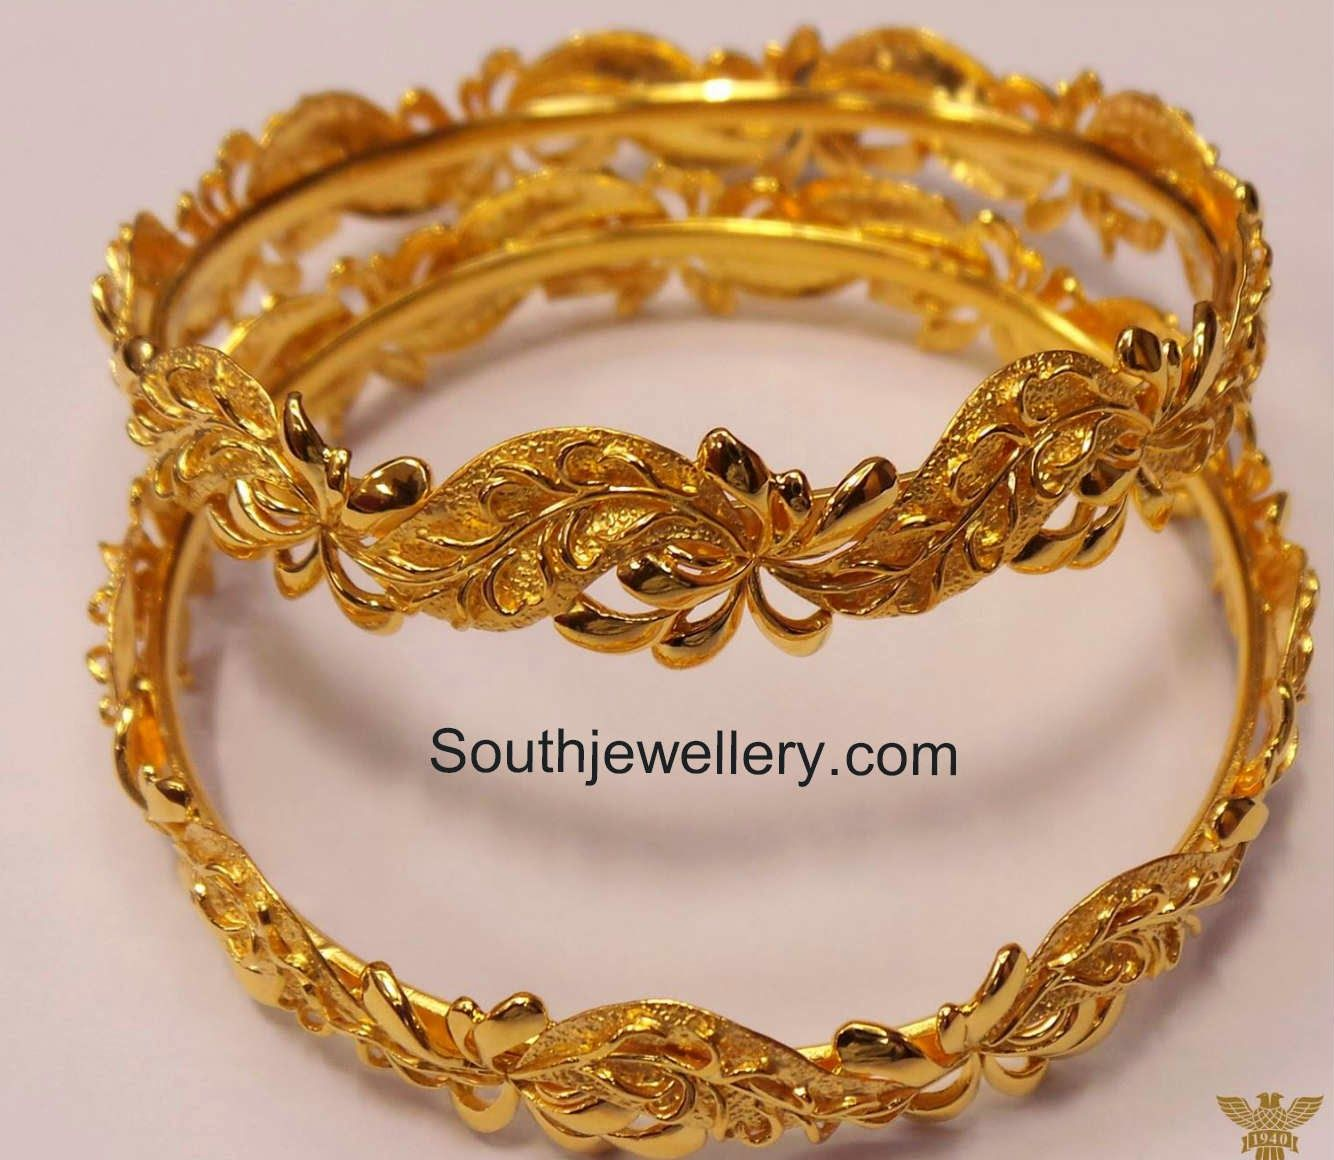 Find This Pin And More On 22 Carat Gold Bangles Jewellery Designs  Page  491 Of 944  Latest Indian